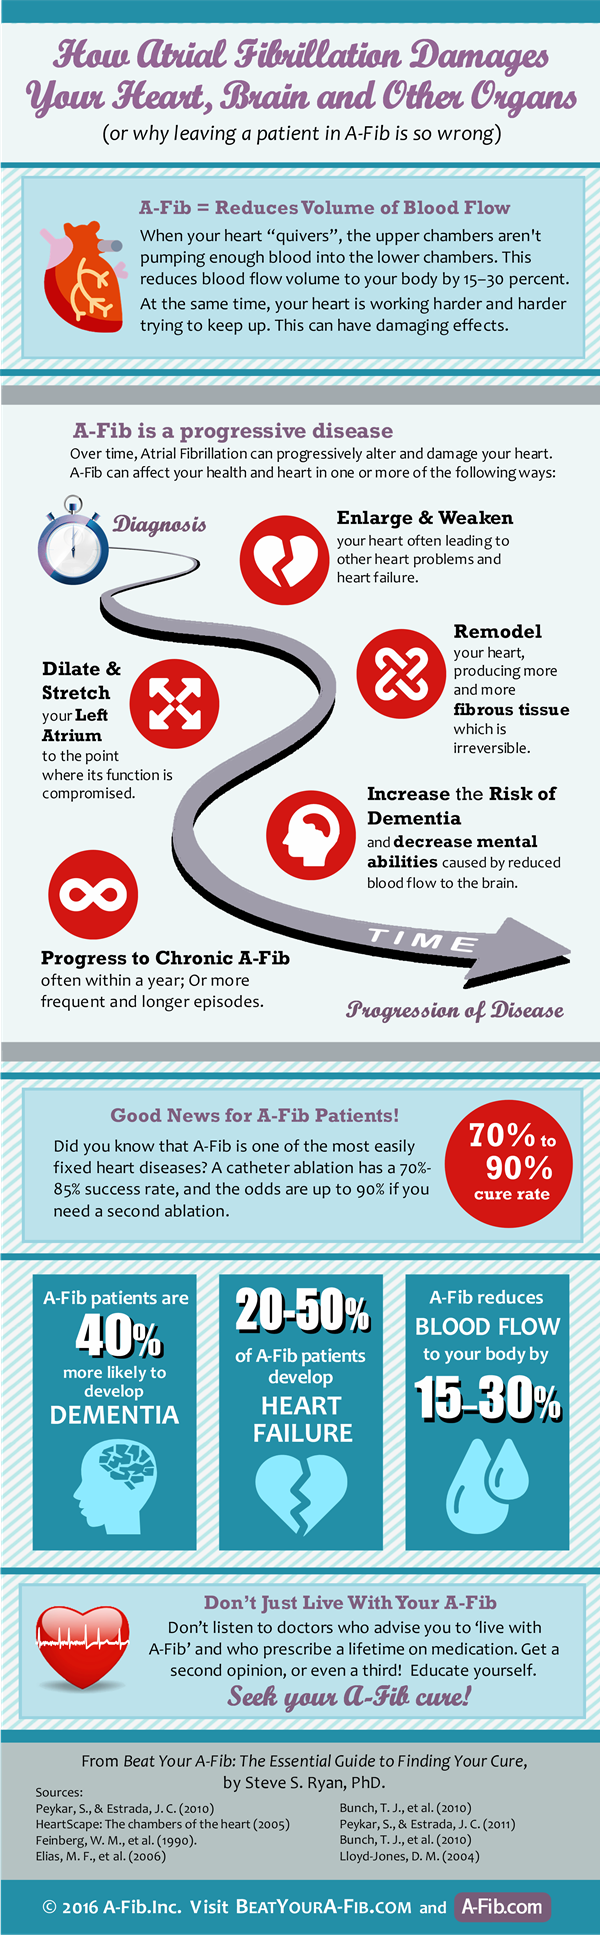 A-Fib is progressive disease - Infographic Aug 2016